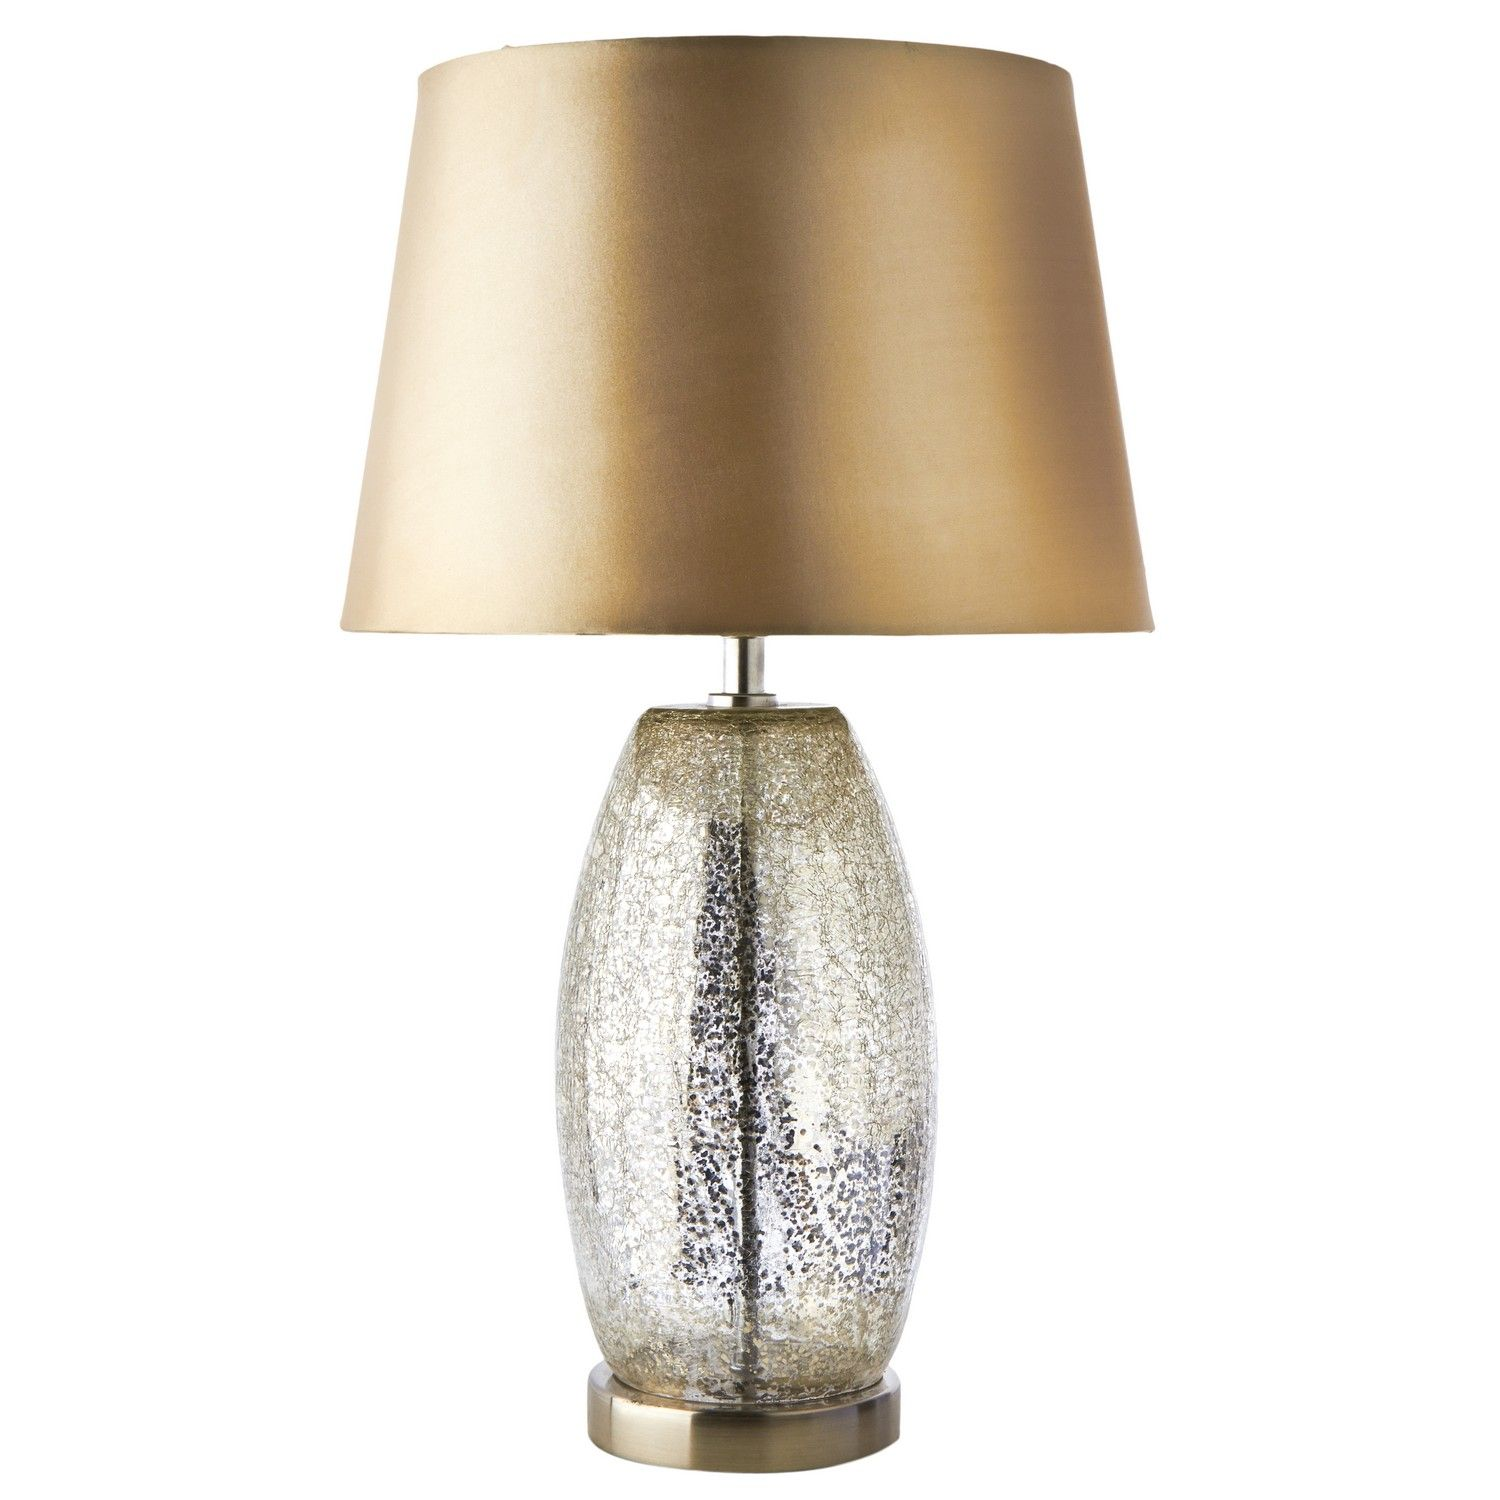 Table lamp height - This Large Table Lamp Has A Champagne Coloured Crackle Effect Glass Base And Has A Champagne Shade Dimensions Height